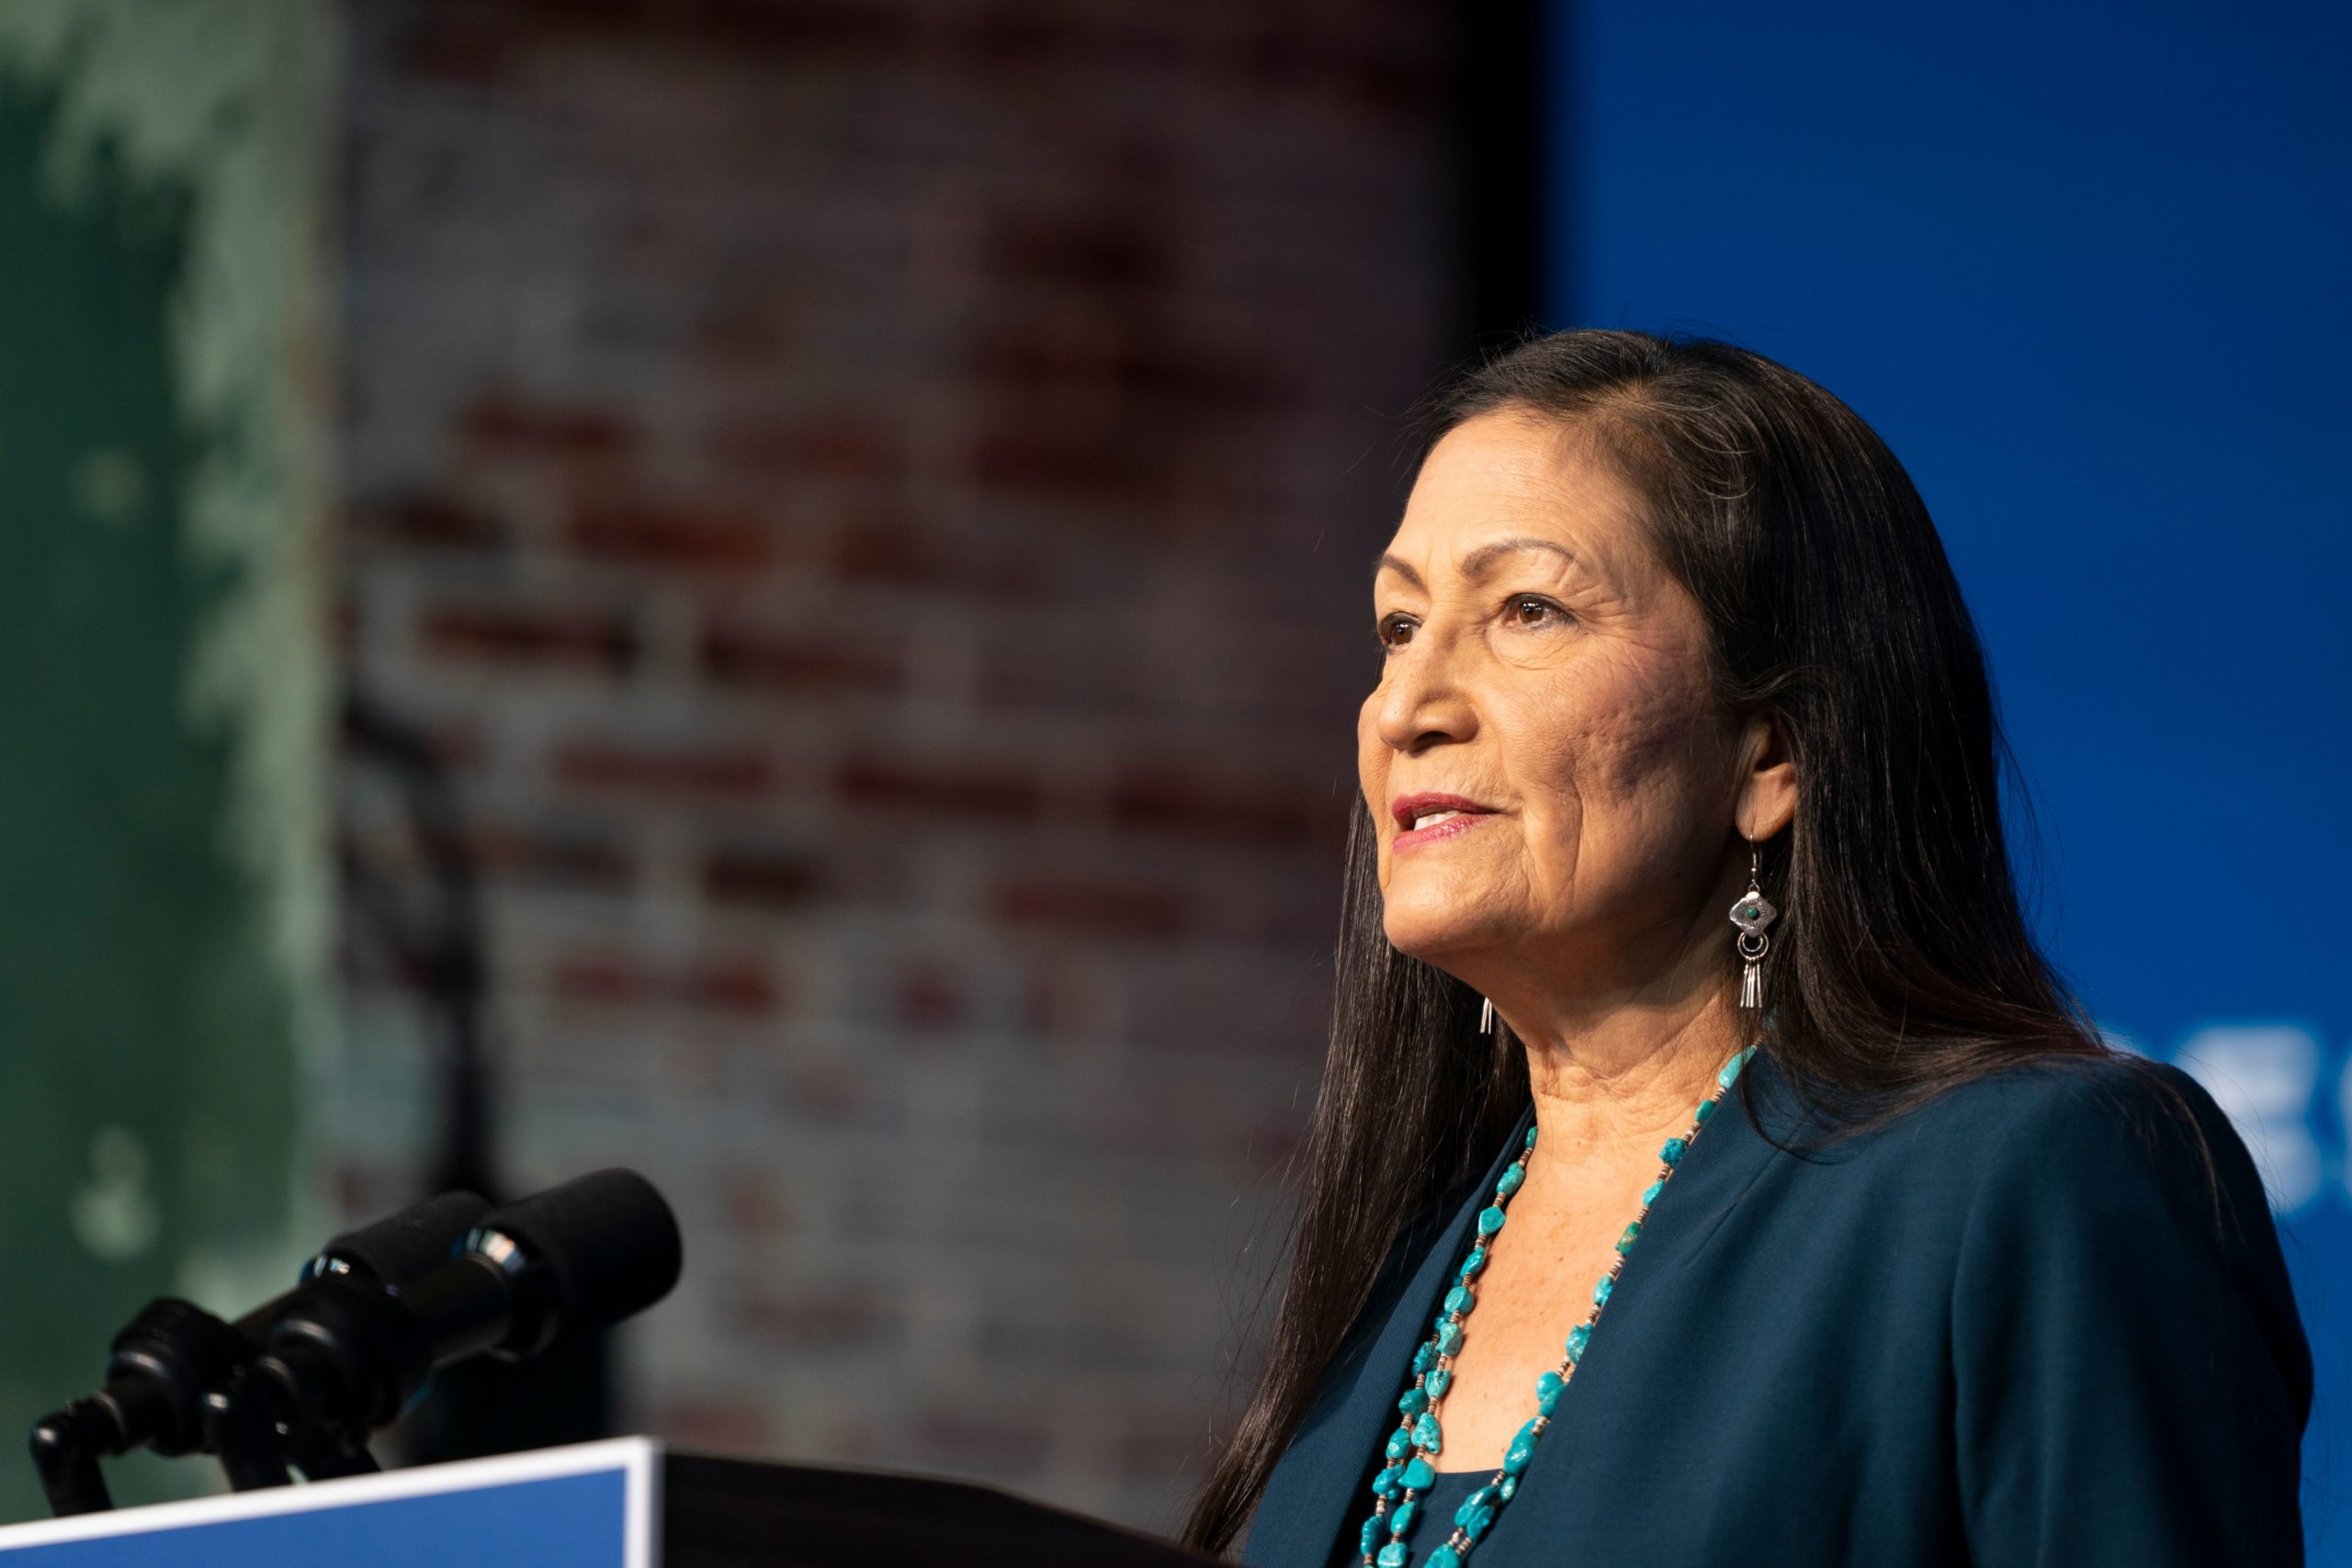 Congresswoman Deb Haaland delivers remarks after being introduced as US President-elect Joe Bidens nominee to be the next US Secretary of Interior at the Queen Theater on December 19, 2020 in Wilmington, Delaware. (ALEX EDELMAN/AFP via Getty Images)